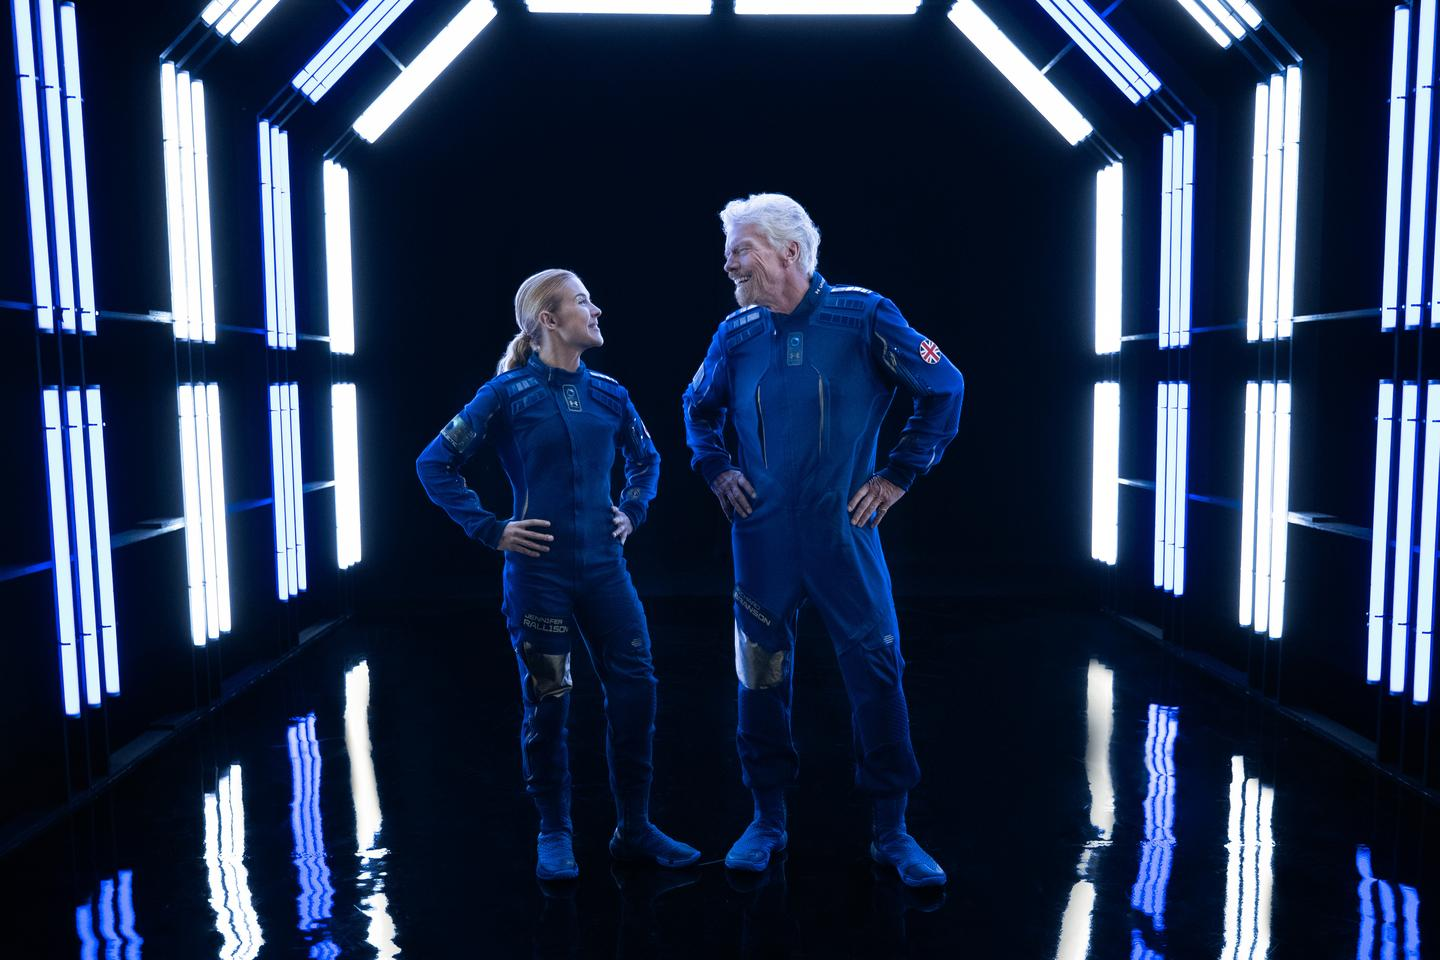 The spacewear designed to be worn by passengers aboard Virgin Galactic's spaceplane